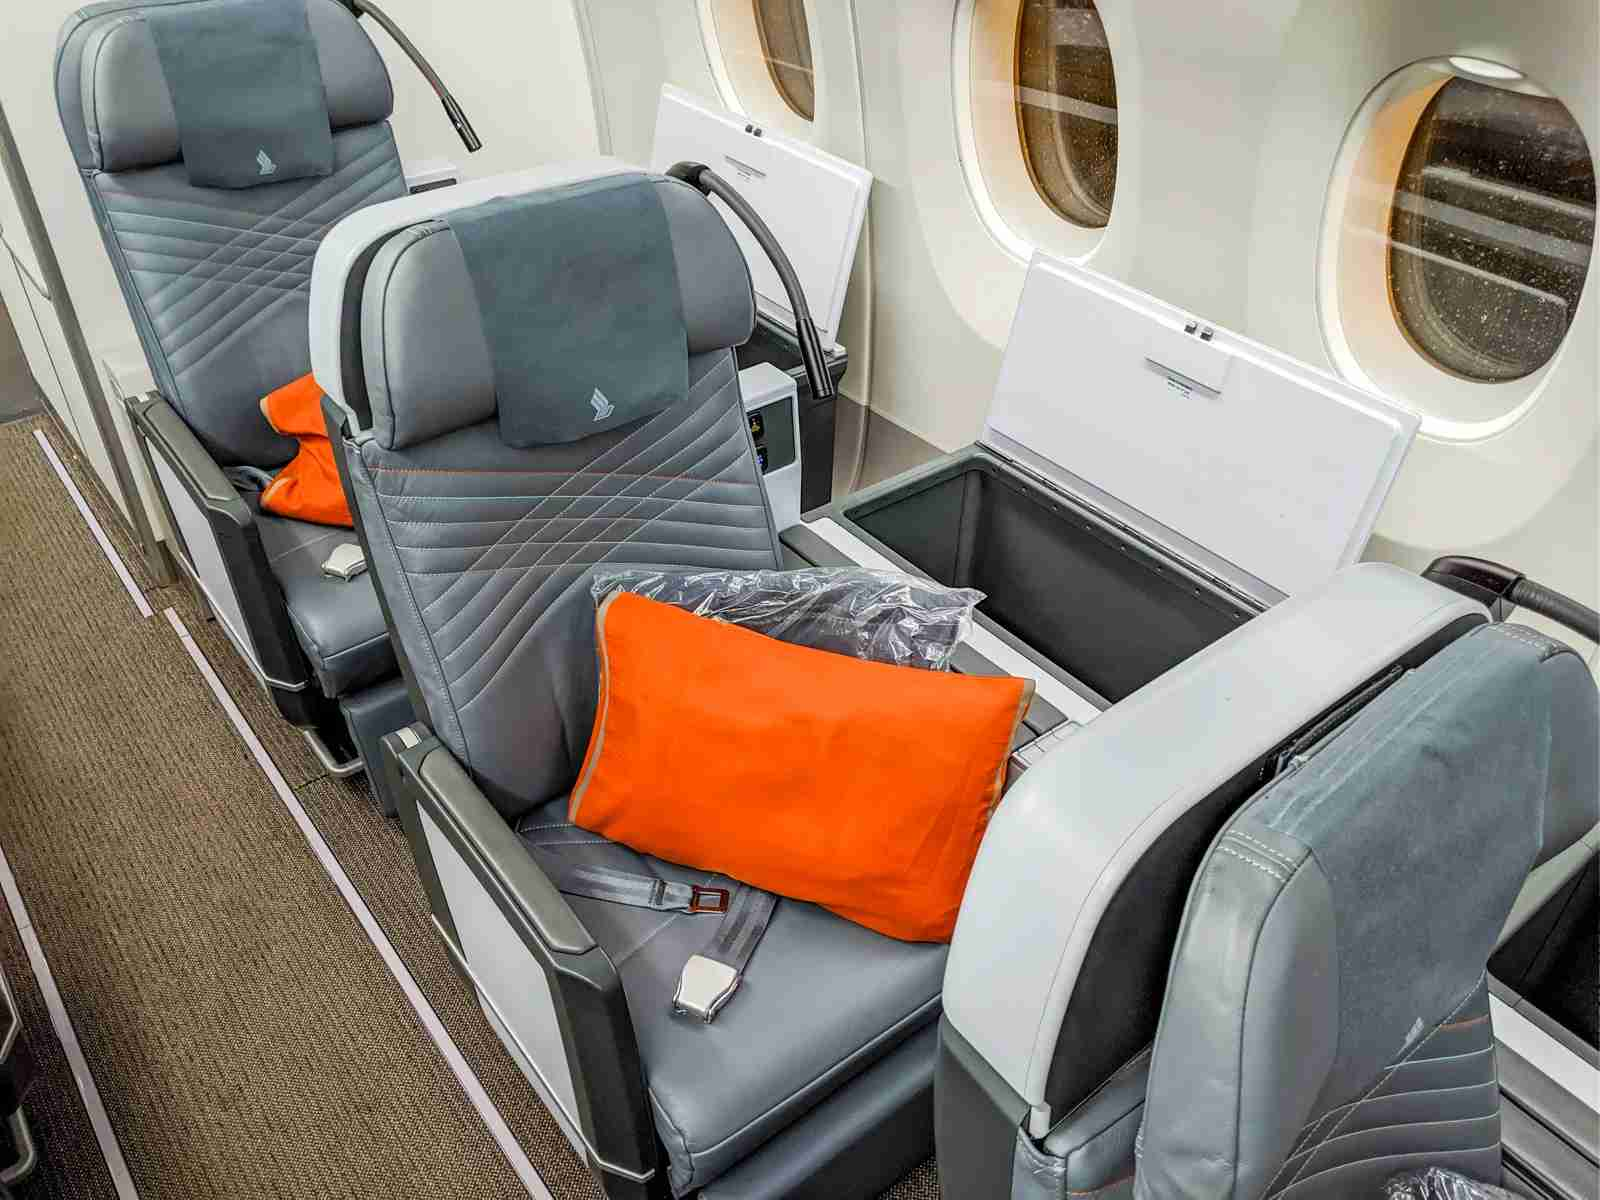 Singapore Airlines premium economy seat (Photo by Katie Genter/The Points Guy)